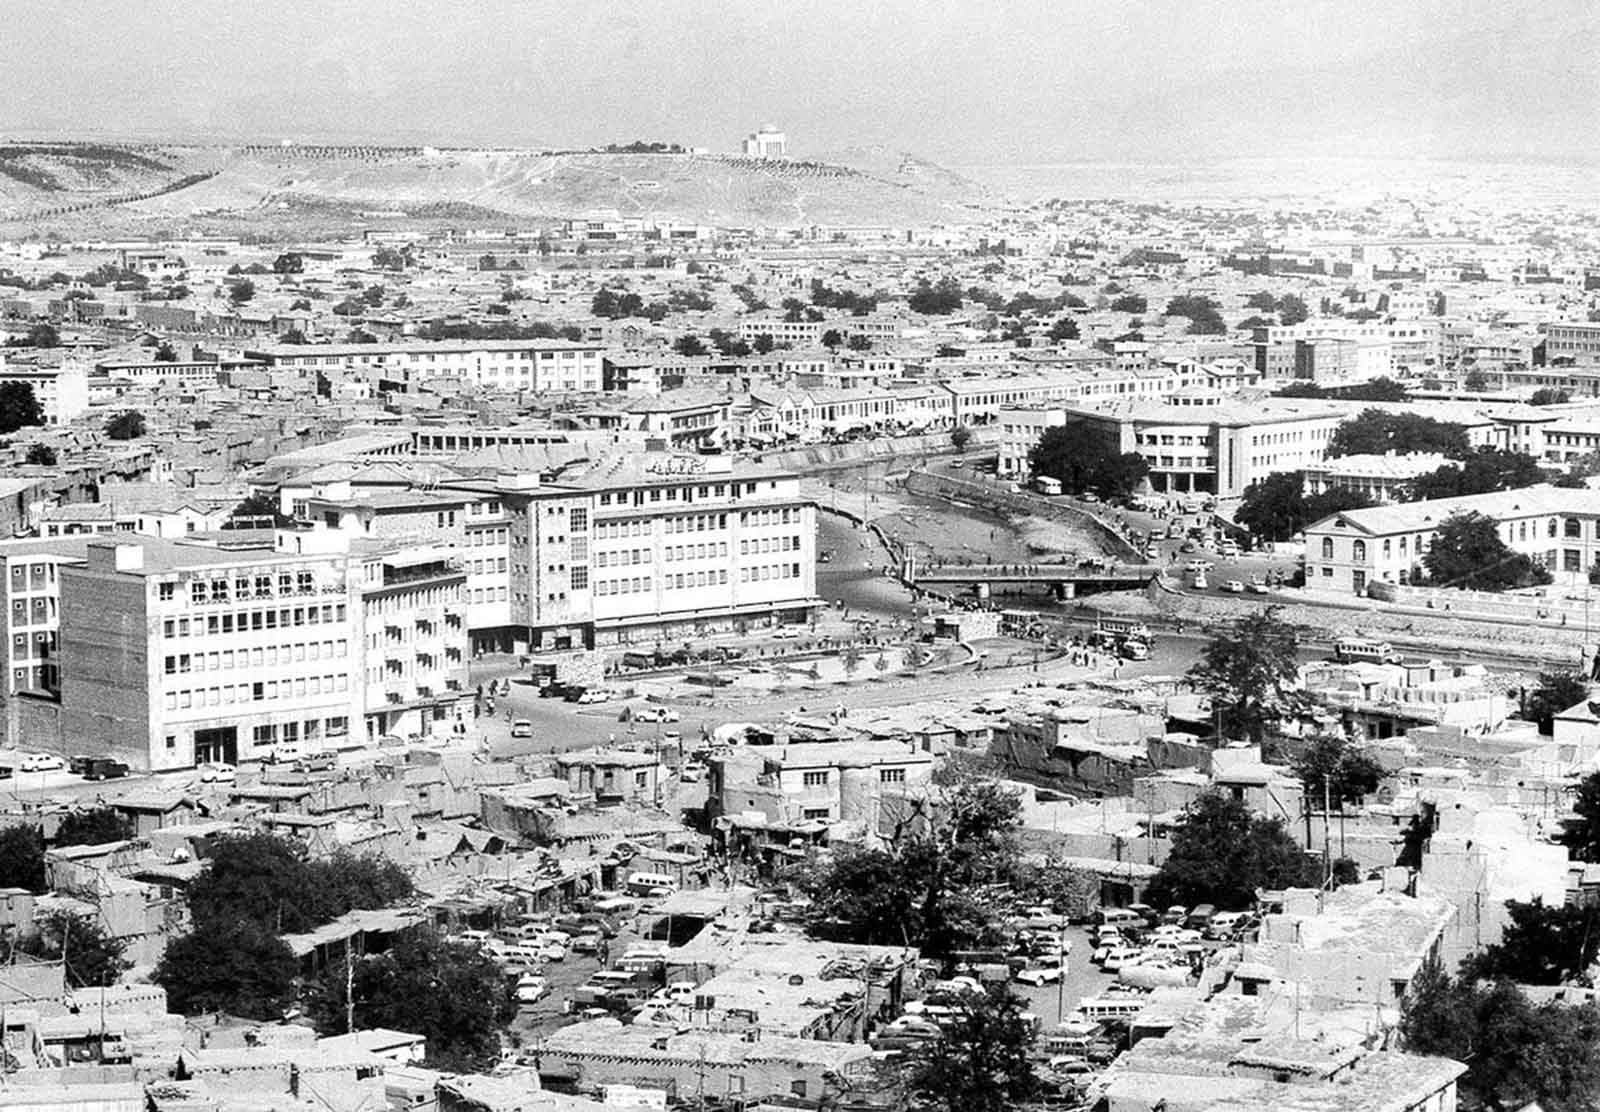 A panoramic view showing the old and new buildings in Kabul, in August of 1969. The Kabul River flows through the city, center right. In the background on the hilltop is the mausoleum of late King Mohammad Nadir Shah.